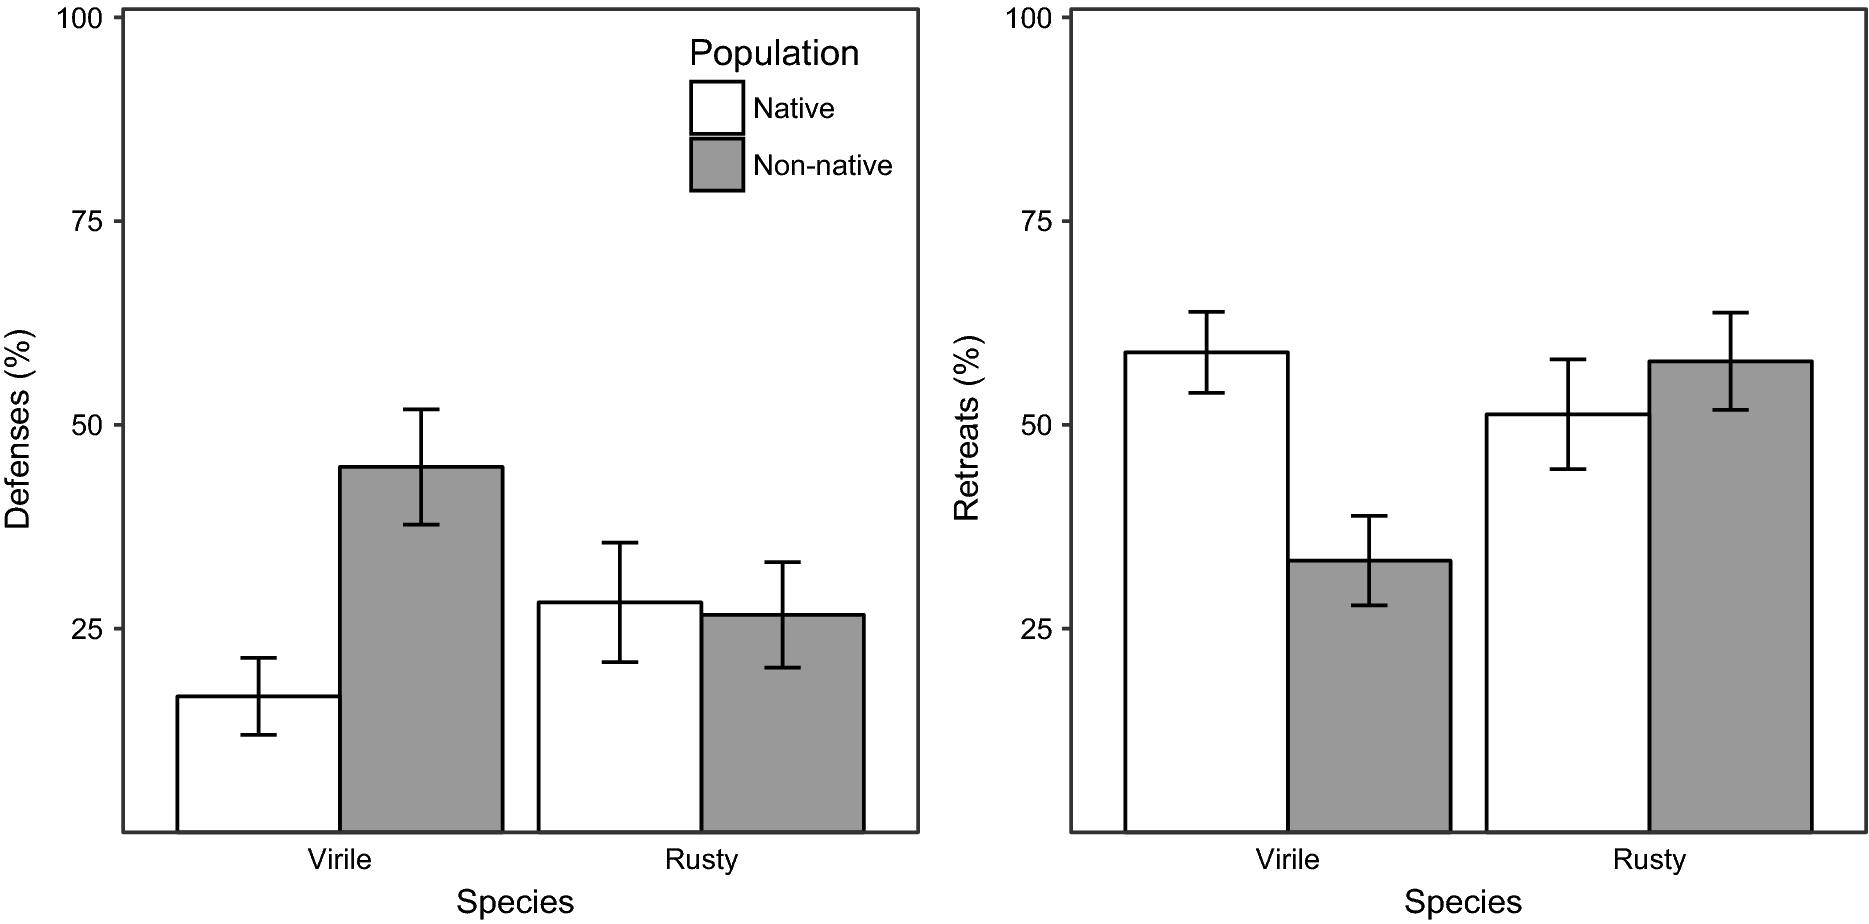 Biogeographic differences between native and non-native